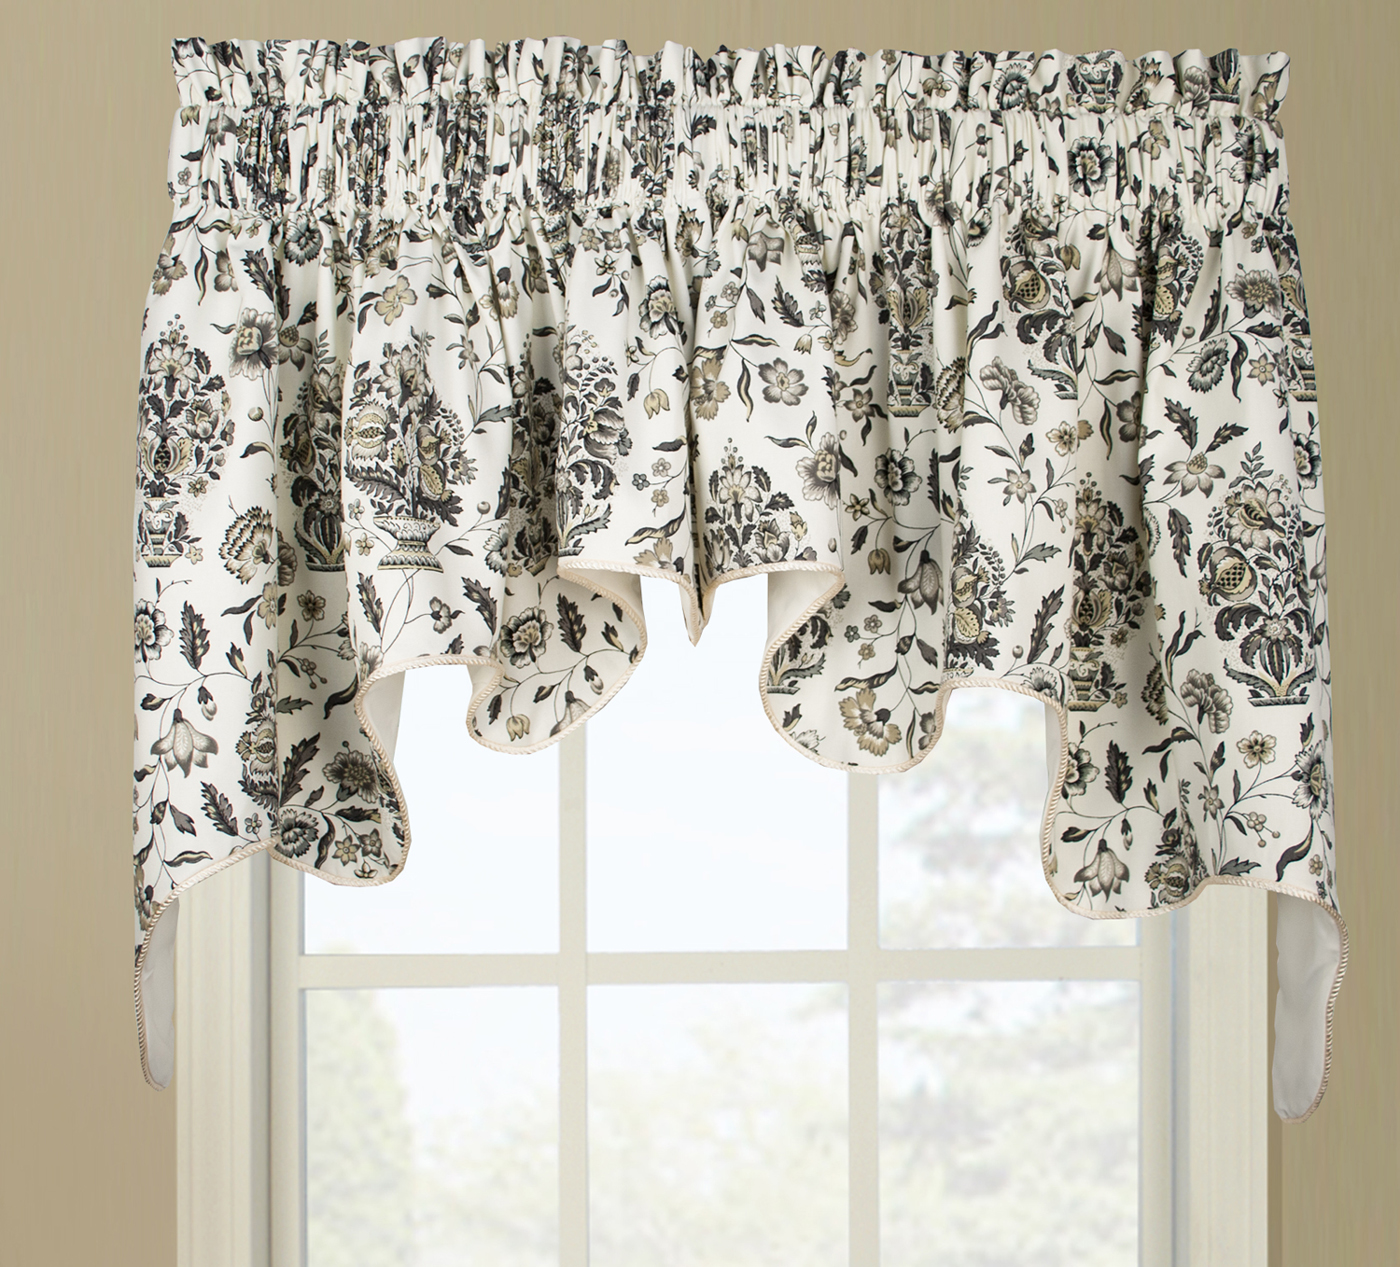 Completely new Valances, Swags & Window Toppers - TheCurtainShop.com AS29